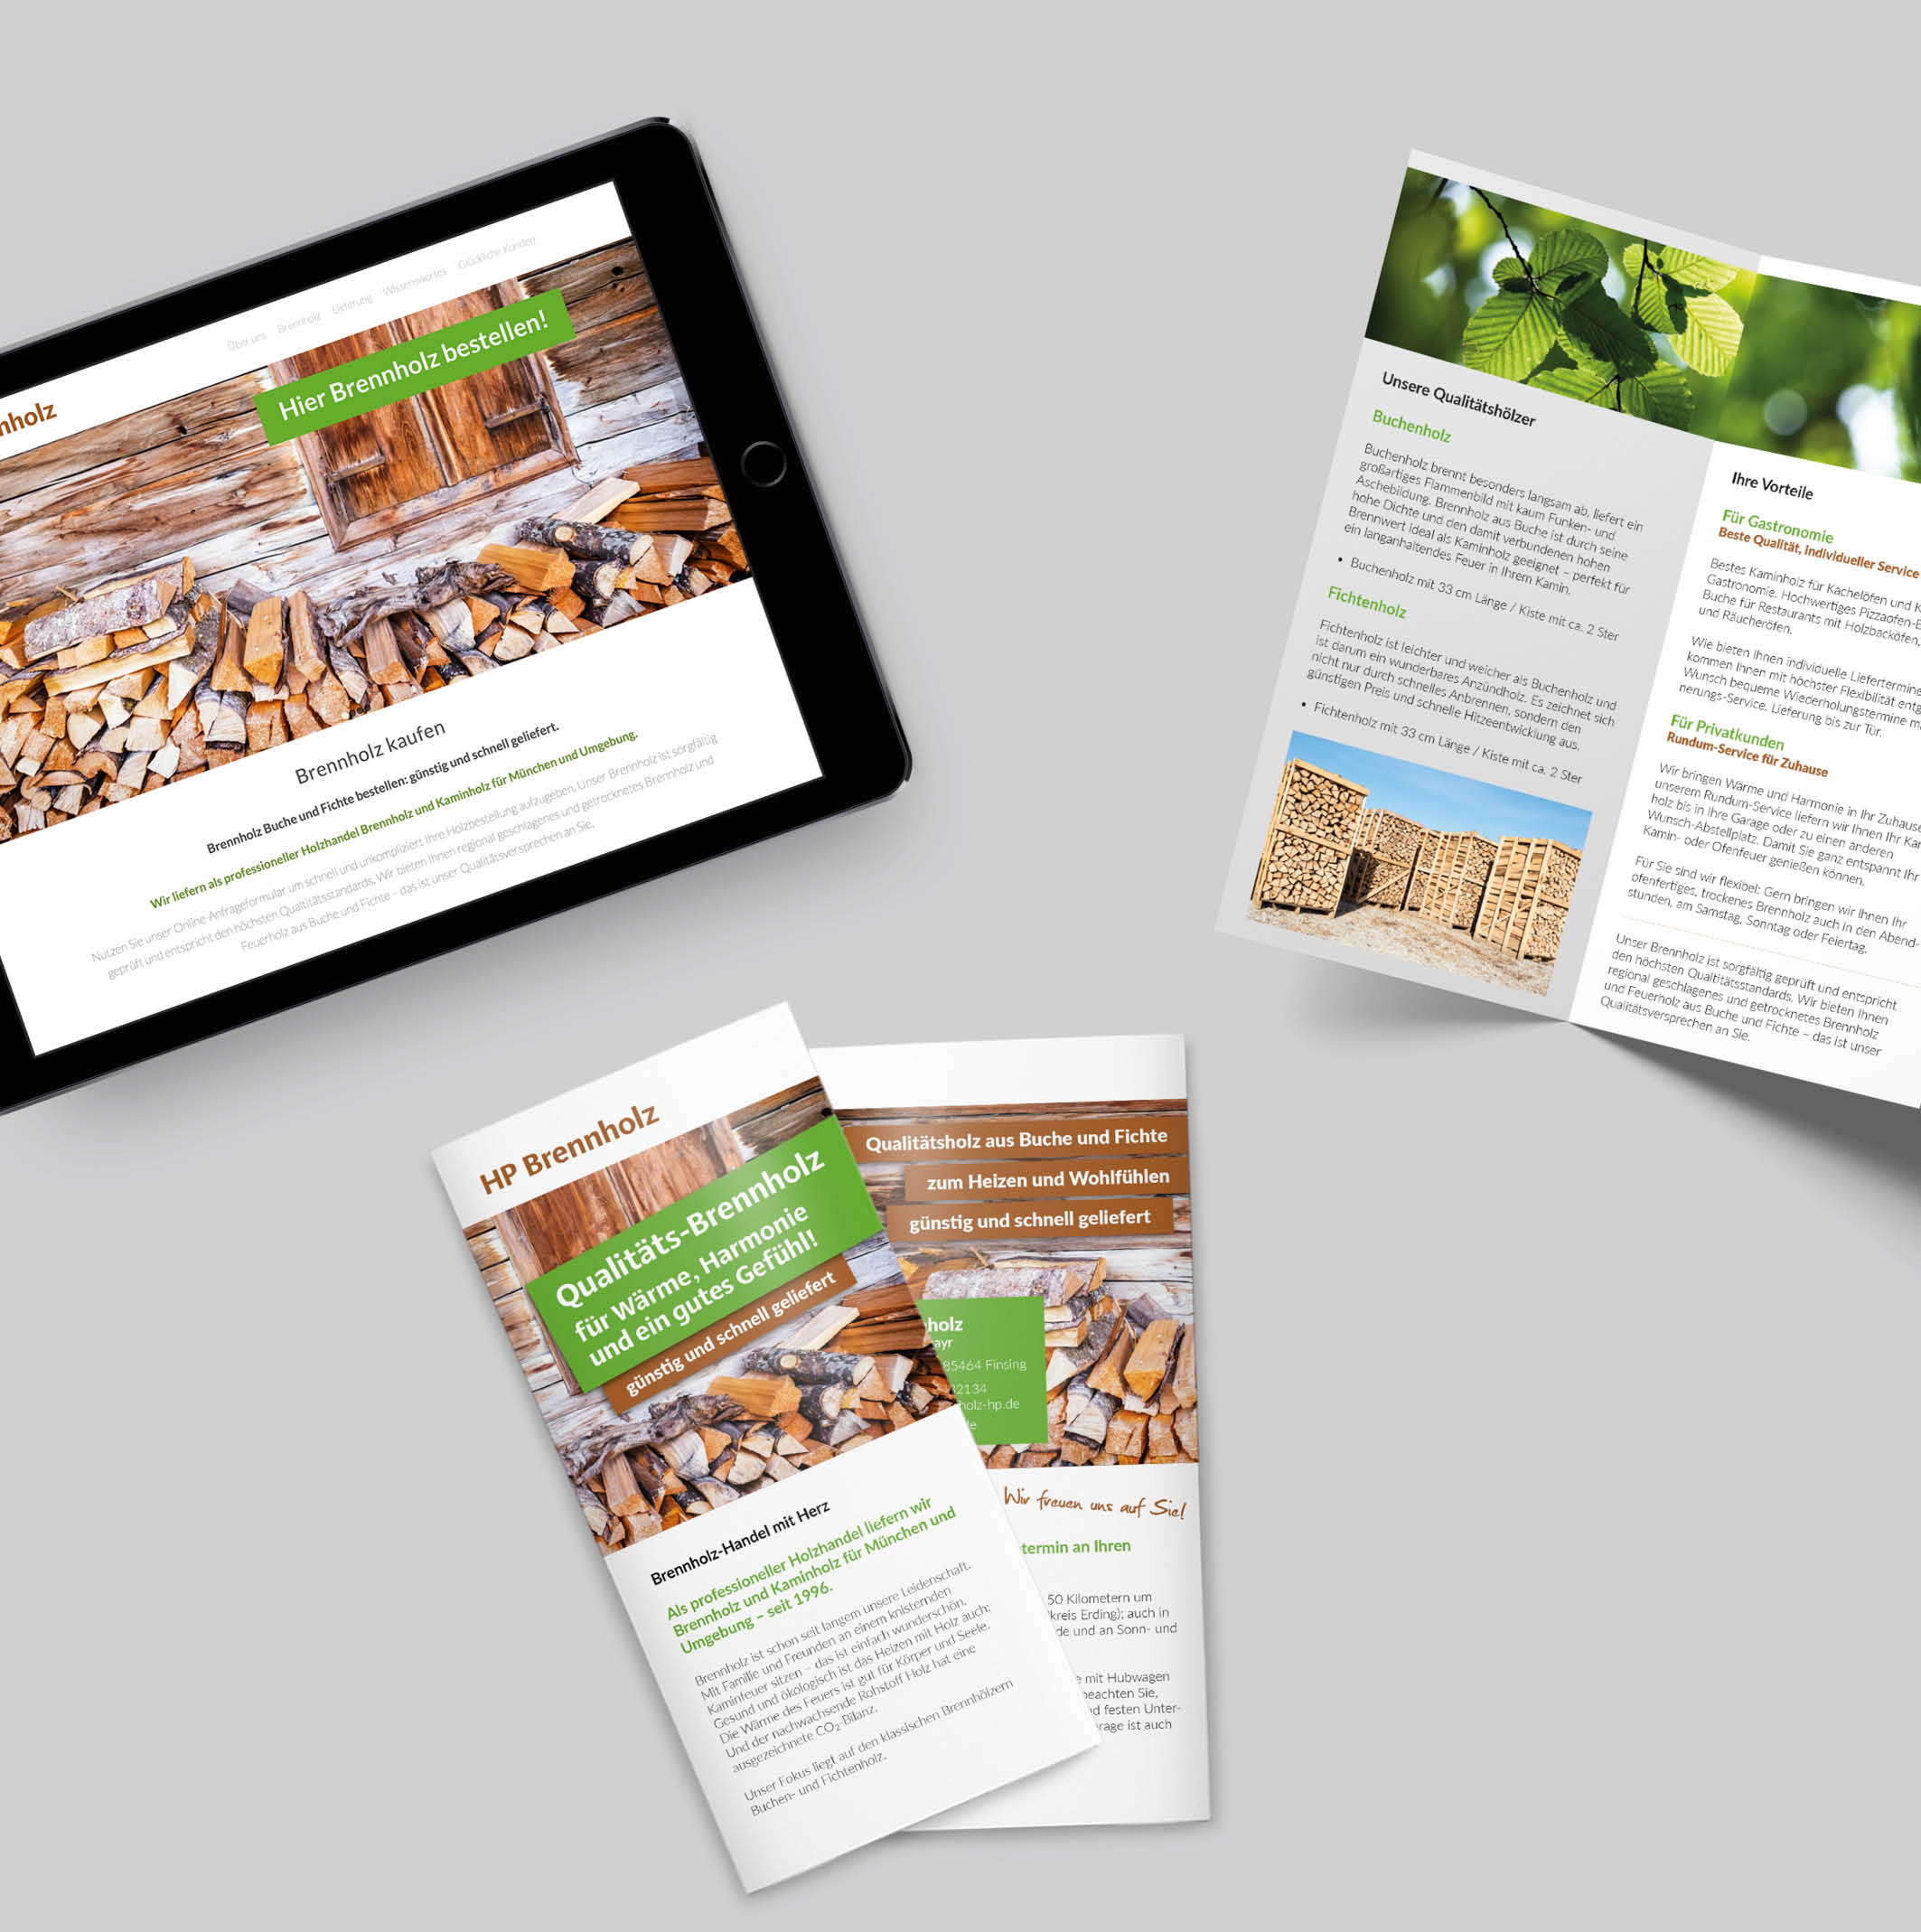 Corporate Design – HP Brennholz: Flyer und Tablet mit Website Darstellung